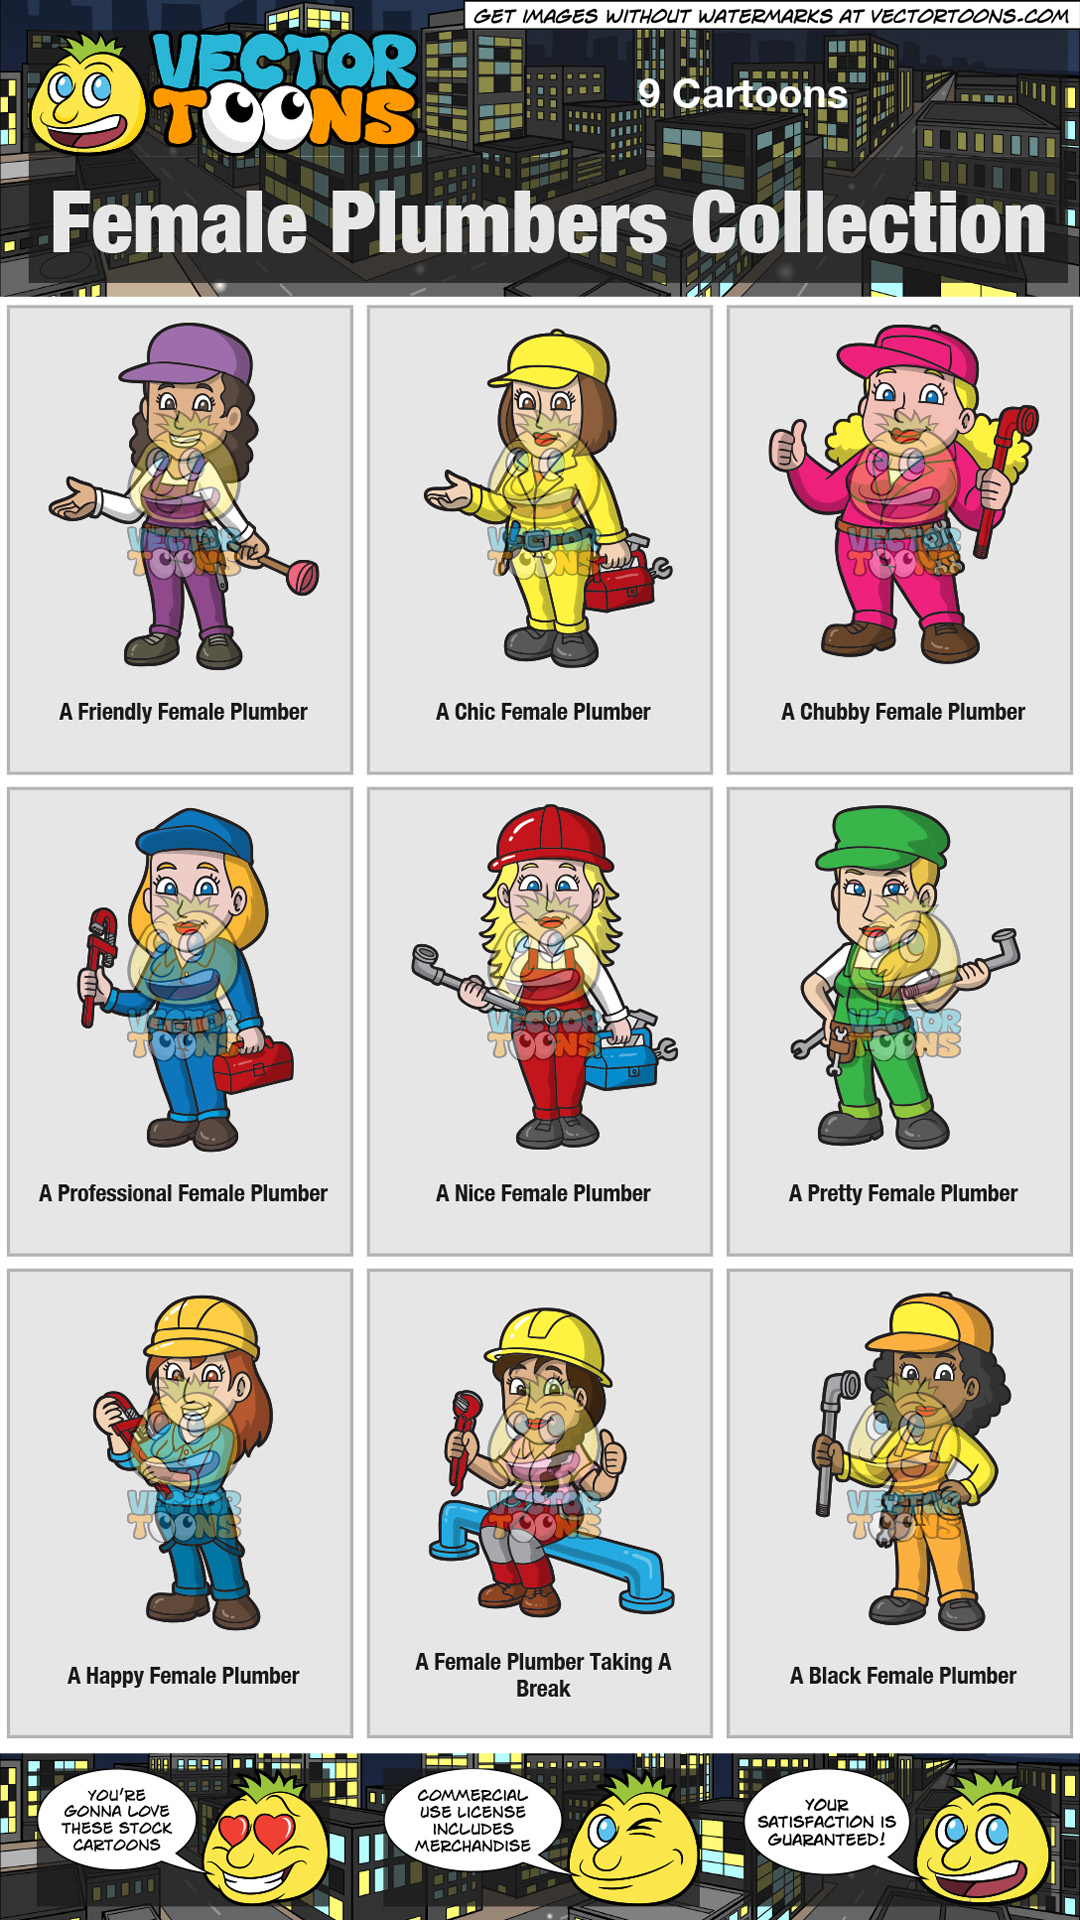 Female Plumbers Collection thumbnail